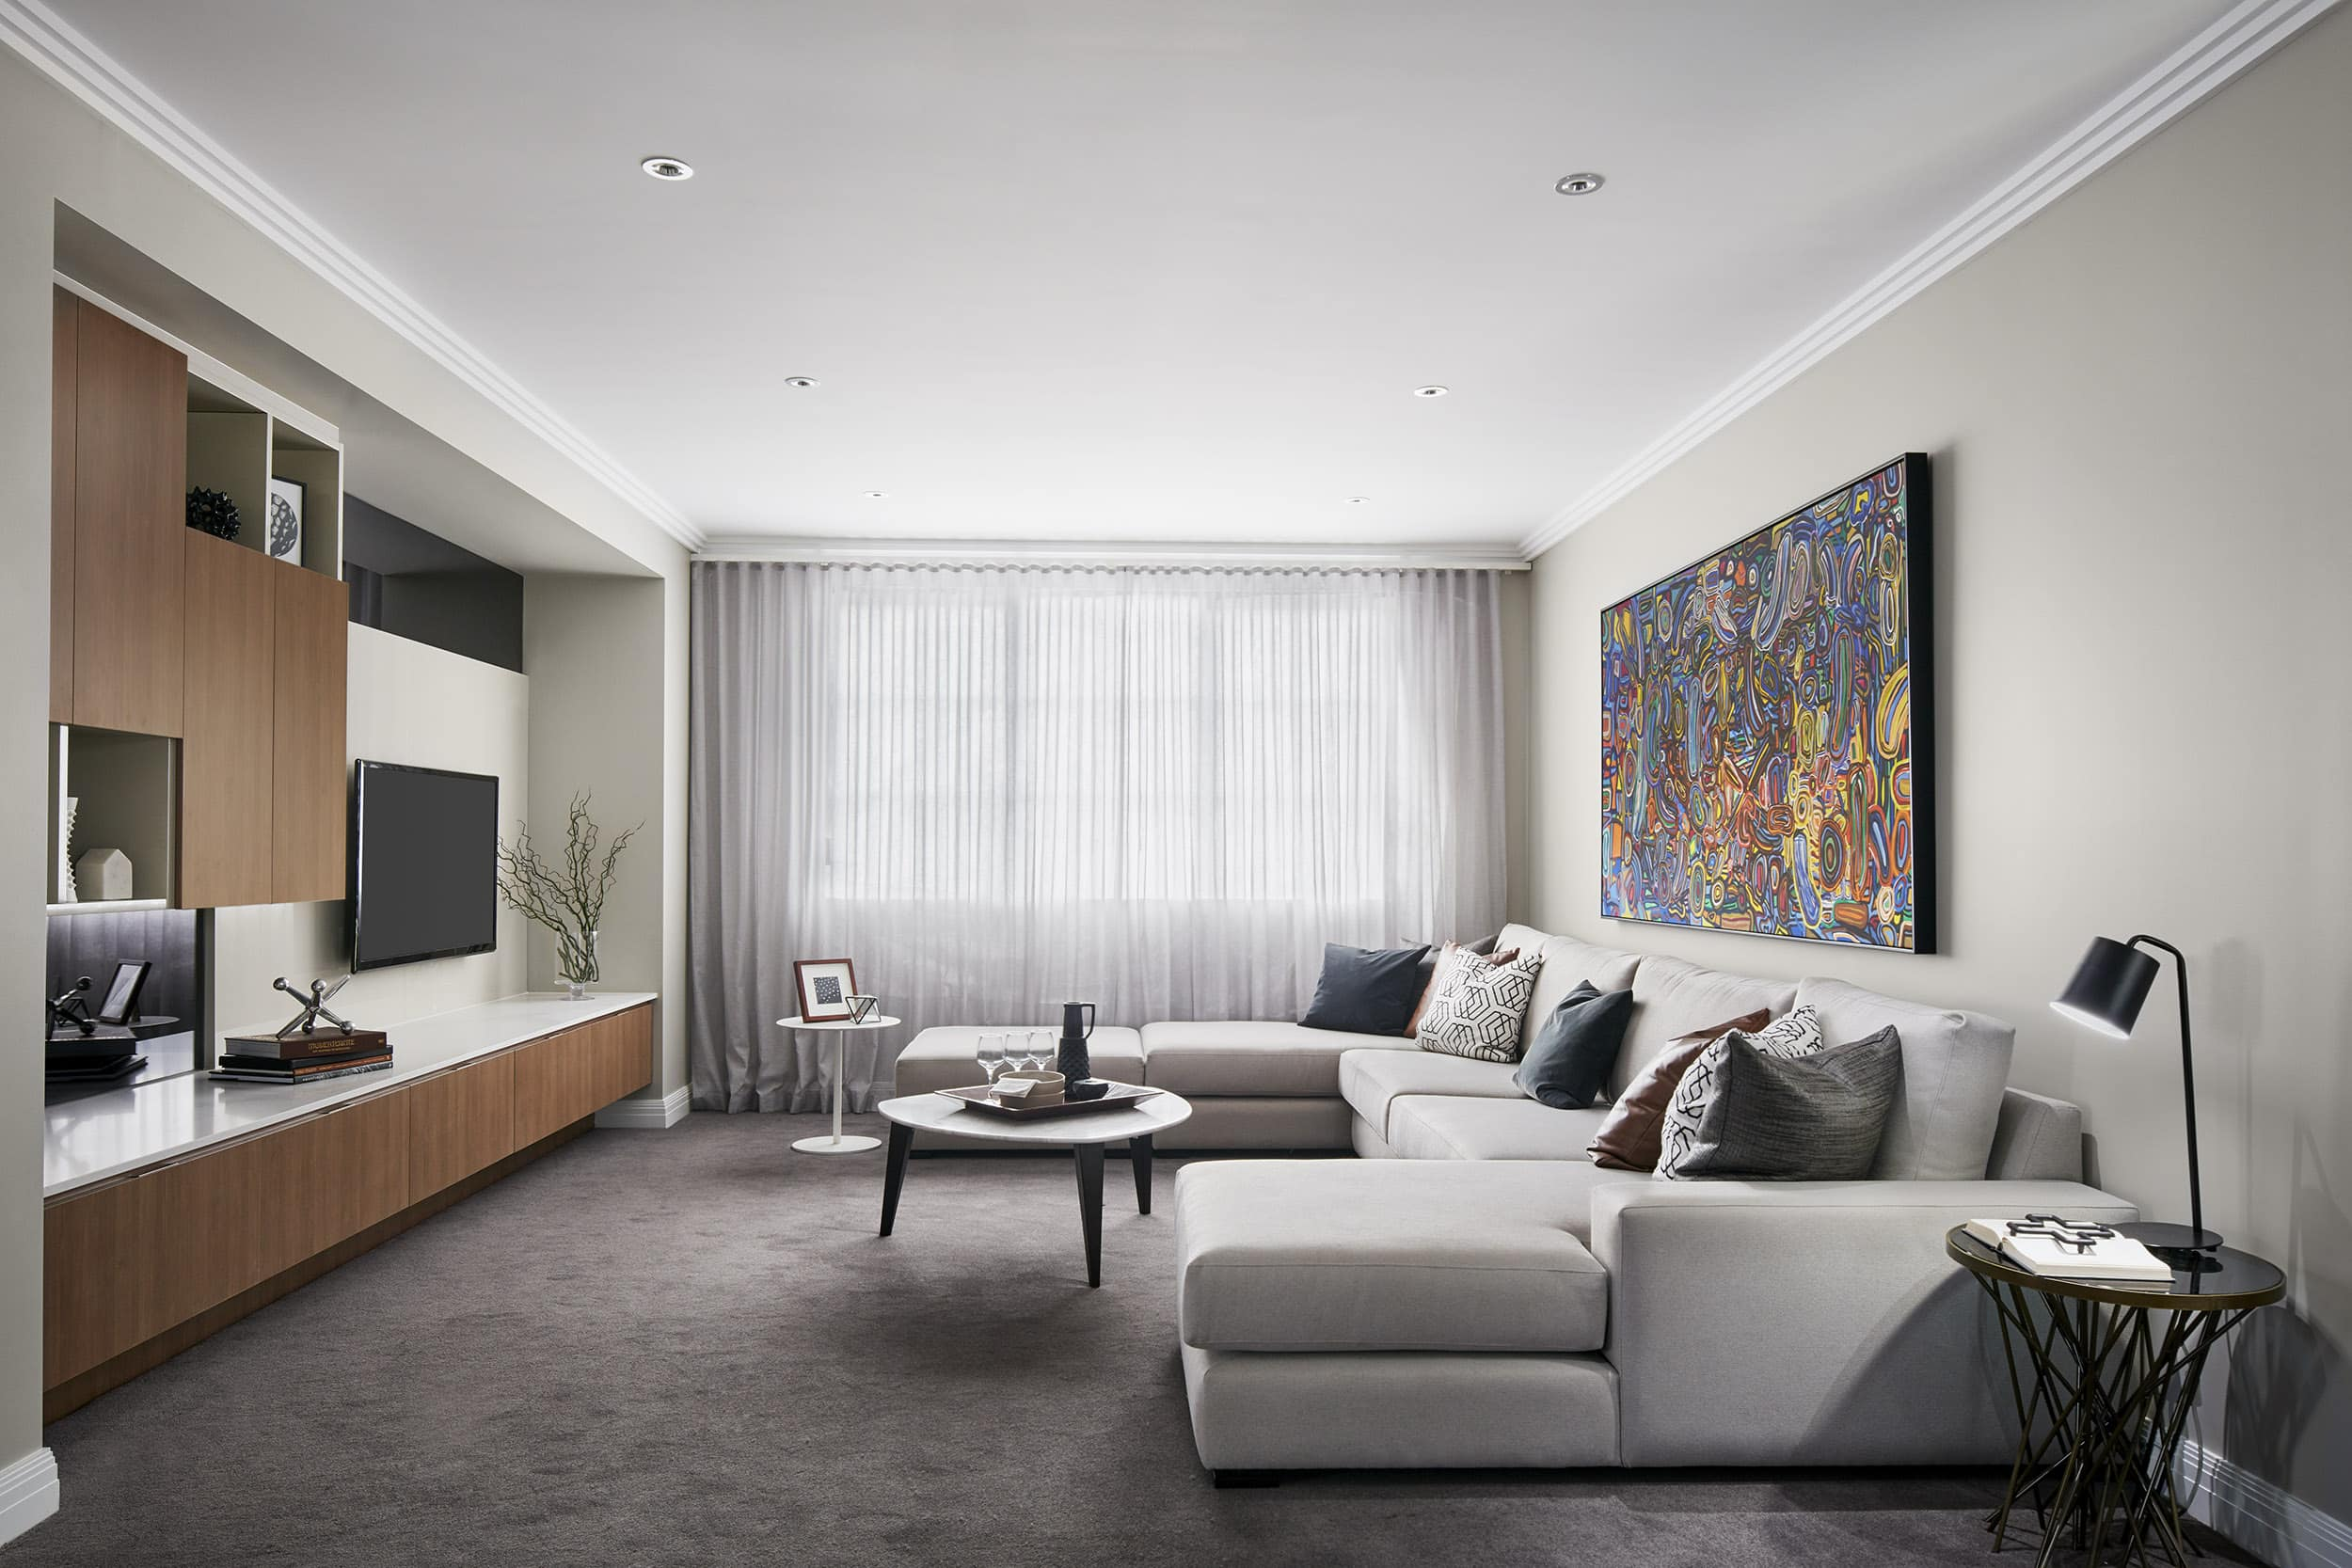 rumpus room with large sectional sofa and media cabinetry with mounted tv